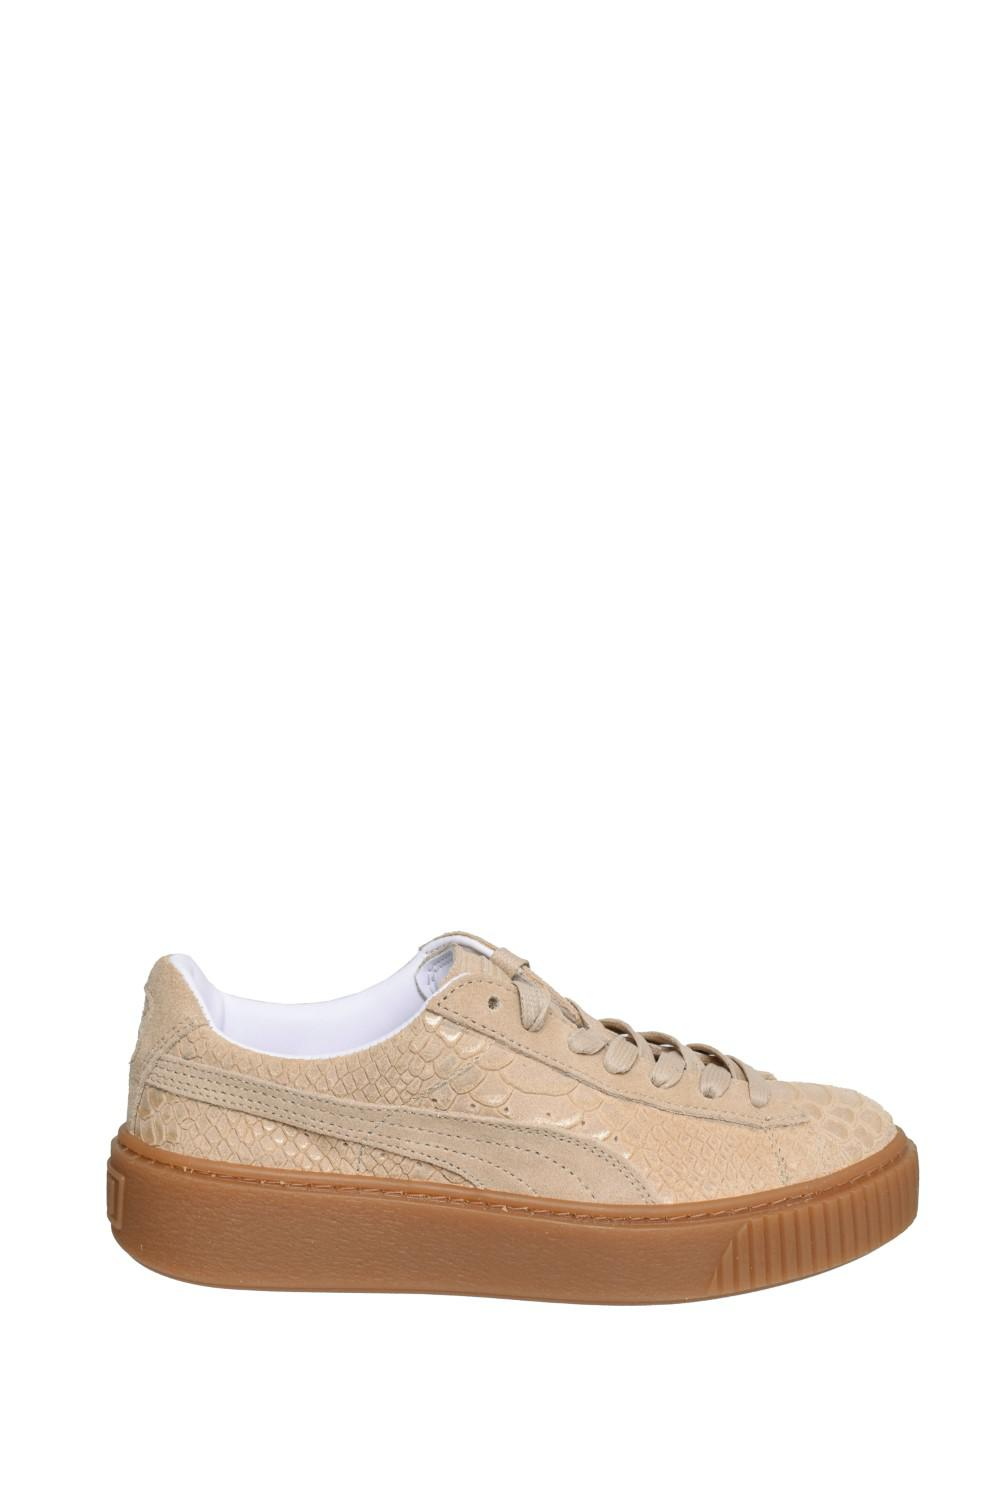 f1c900e22da Lyst - PUMA Basket Platform Exotic Skin Low Top Sneaker- Natural ...